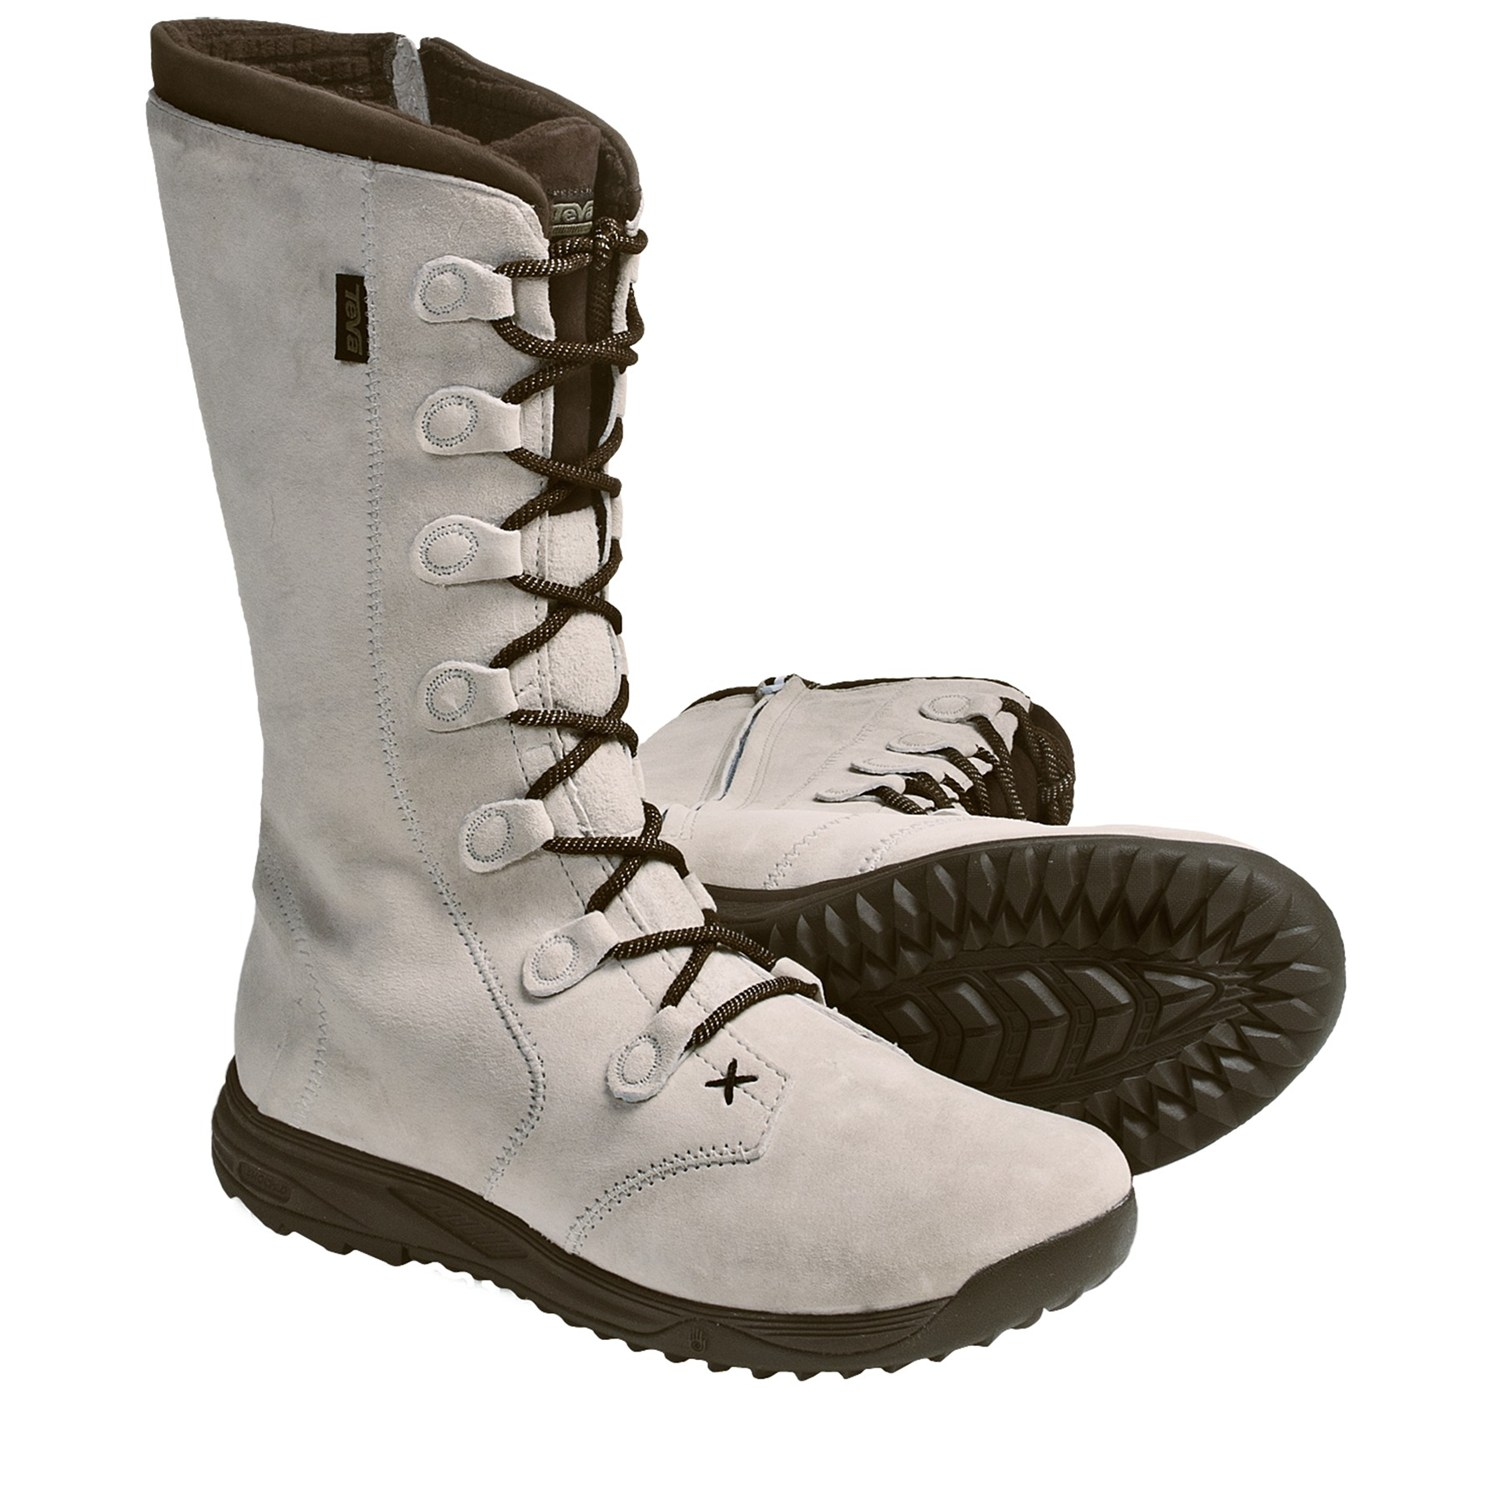 Waterproof Winter Boots Womens | Santa Barbara Institute for ...